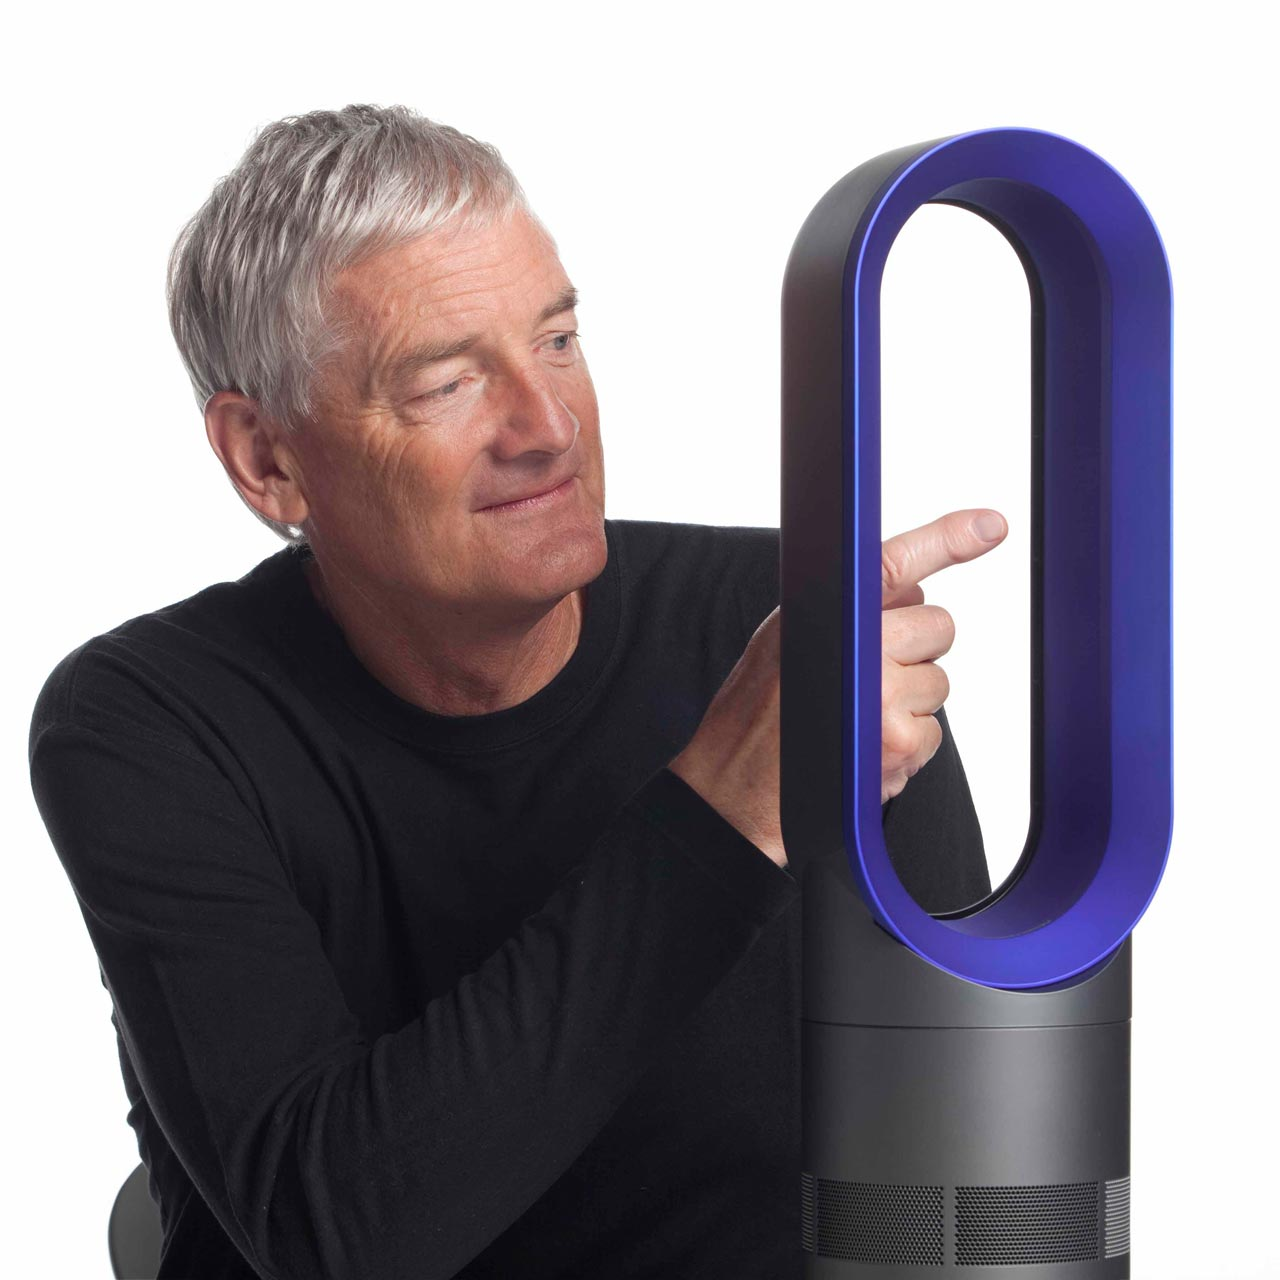 Sir James Dyson. Inventor, industrial designer and founder of the Dyson company